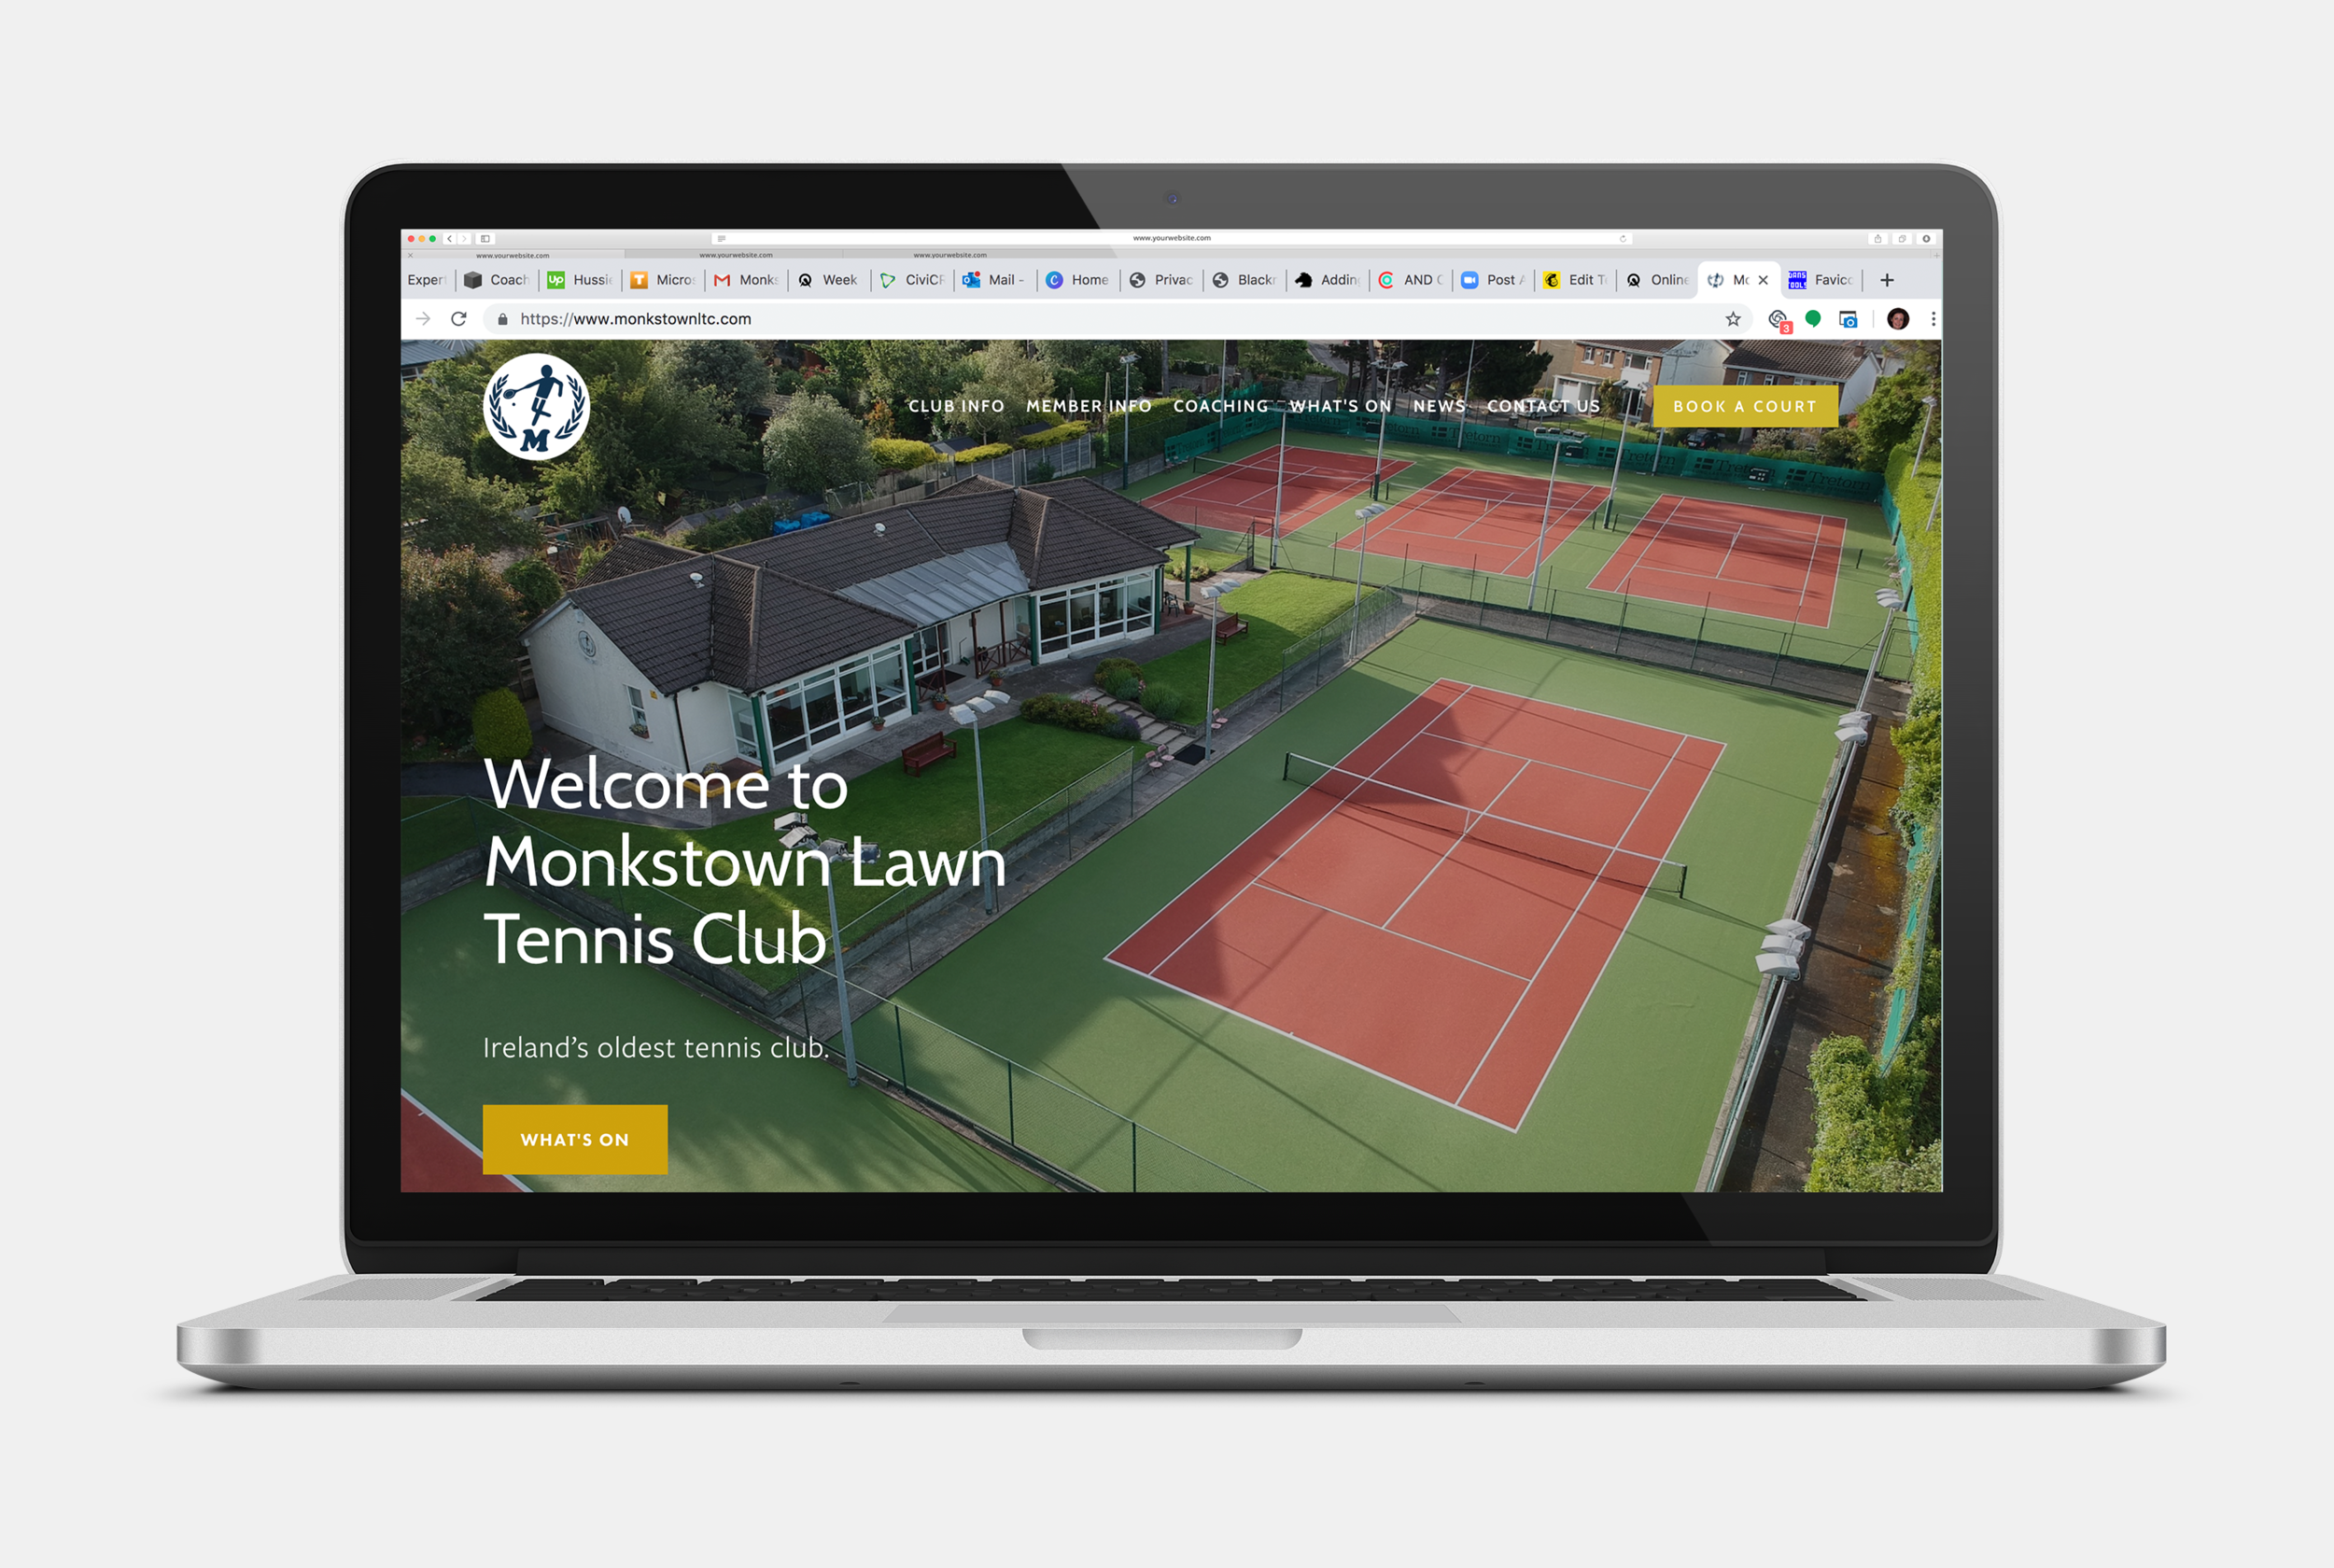 Oh, one of my favourite projects - Monkstown Lawn Tennis Club. Beautiful photography and lots of useful content is sure to make this site a hit (excuse the pun) with their members.